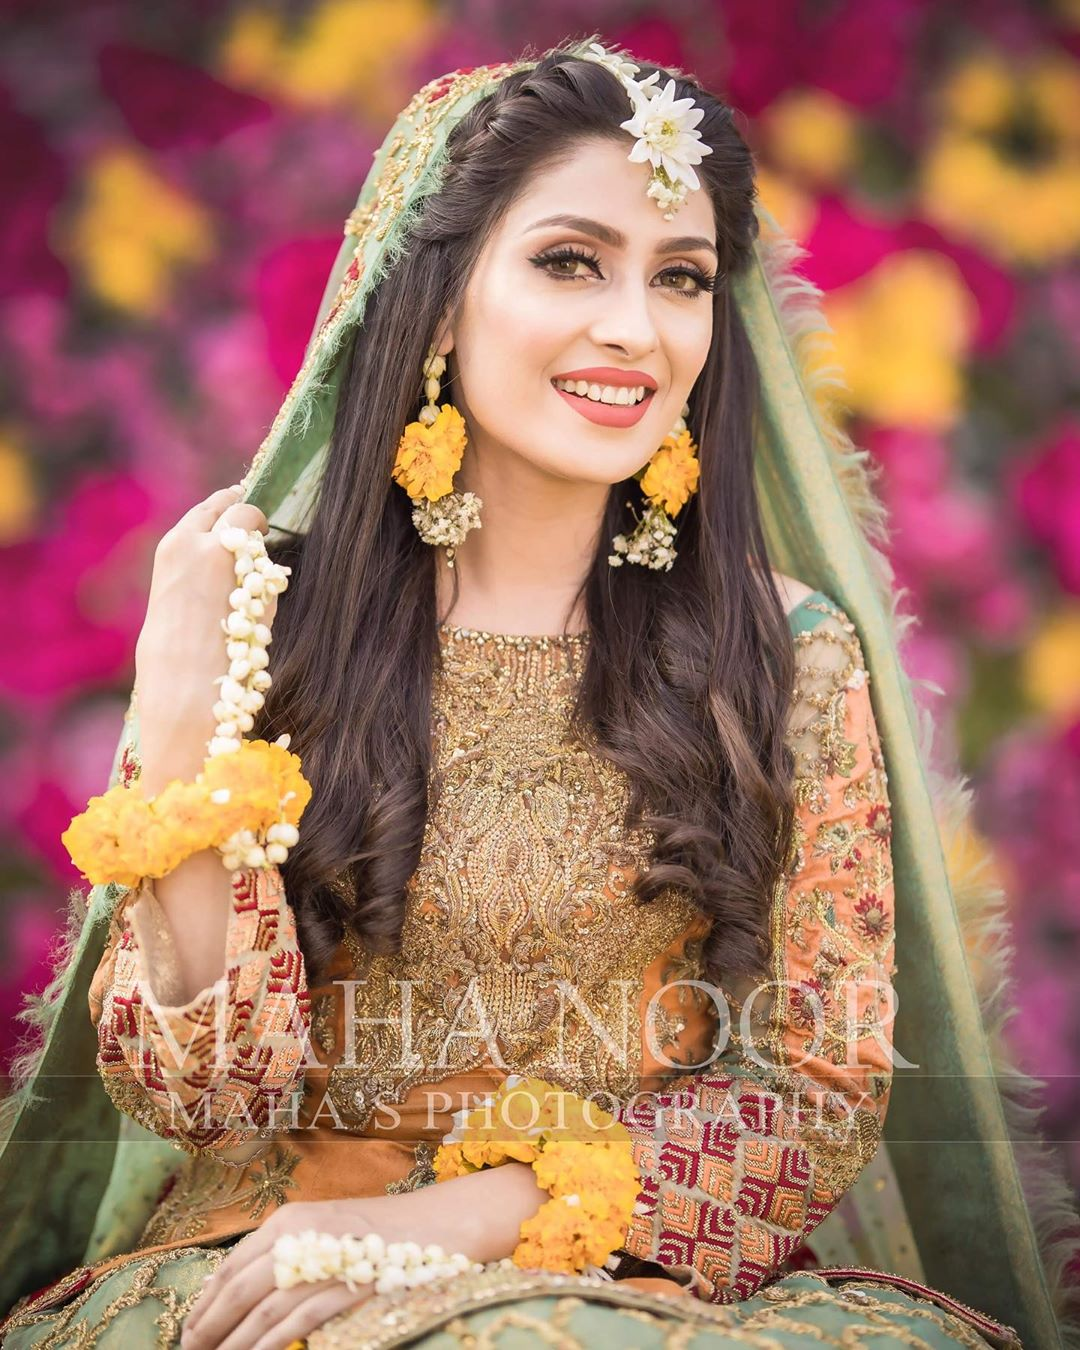 Ayeza Khan Bridal Photo Shoot 5